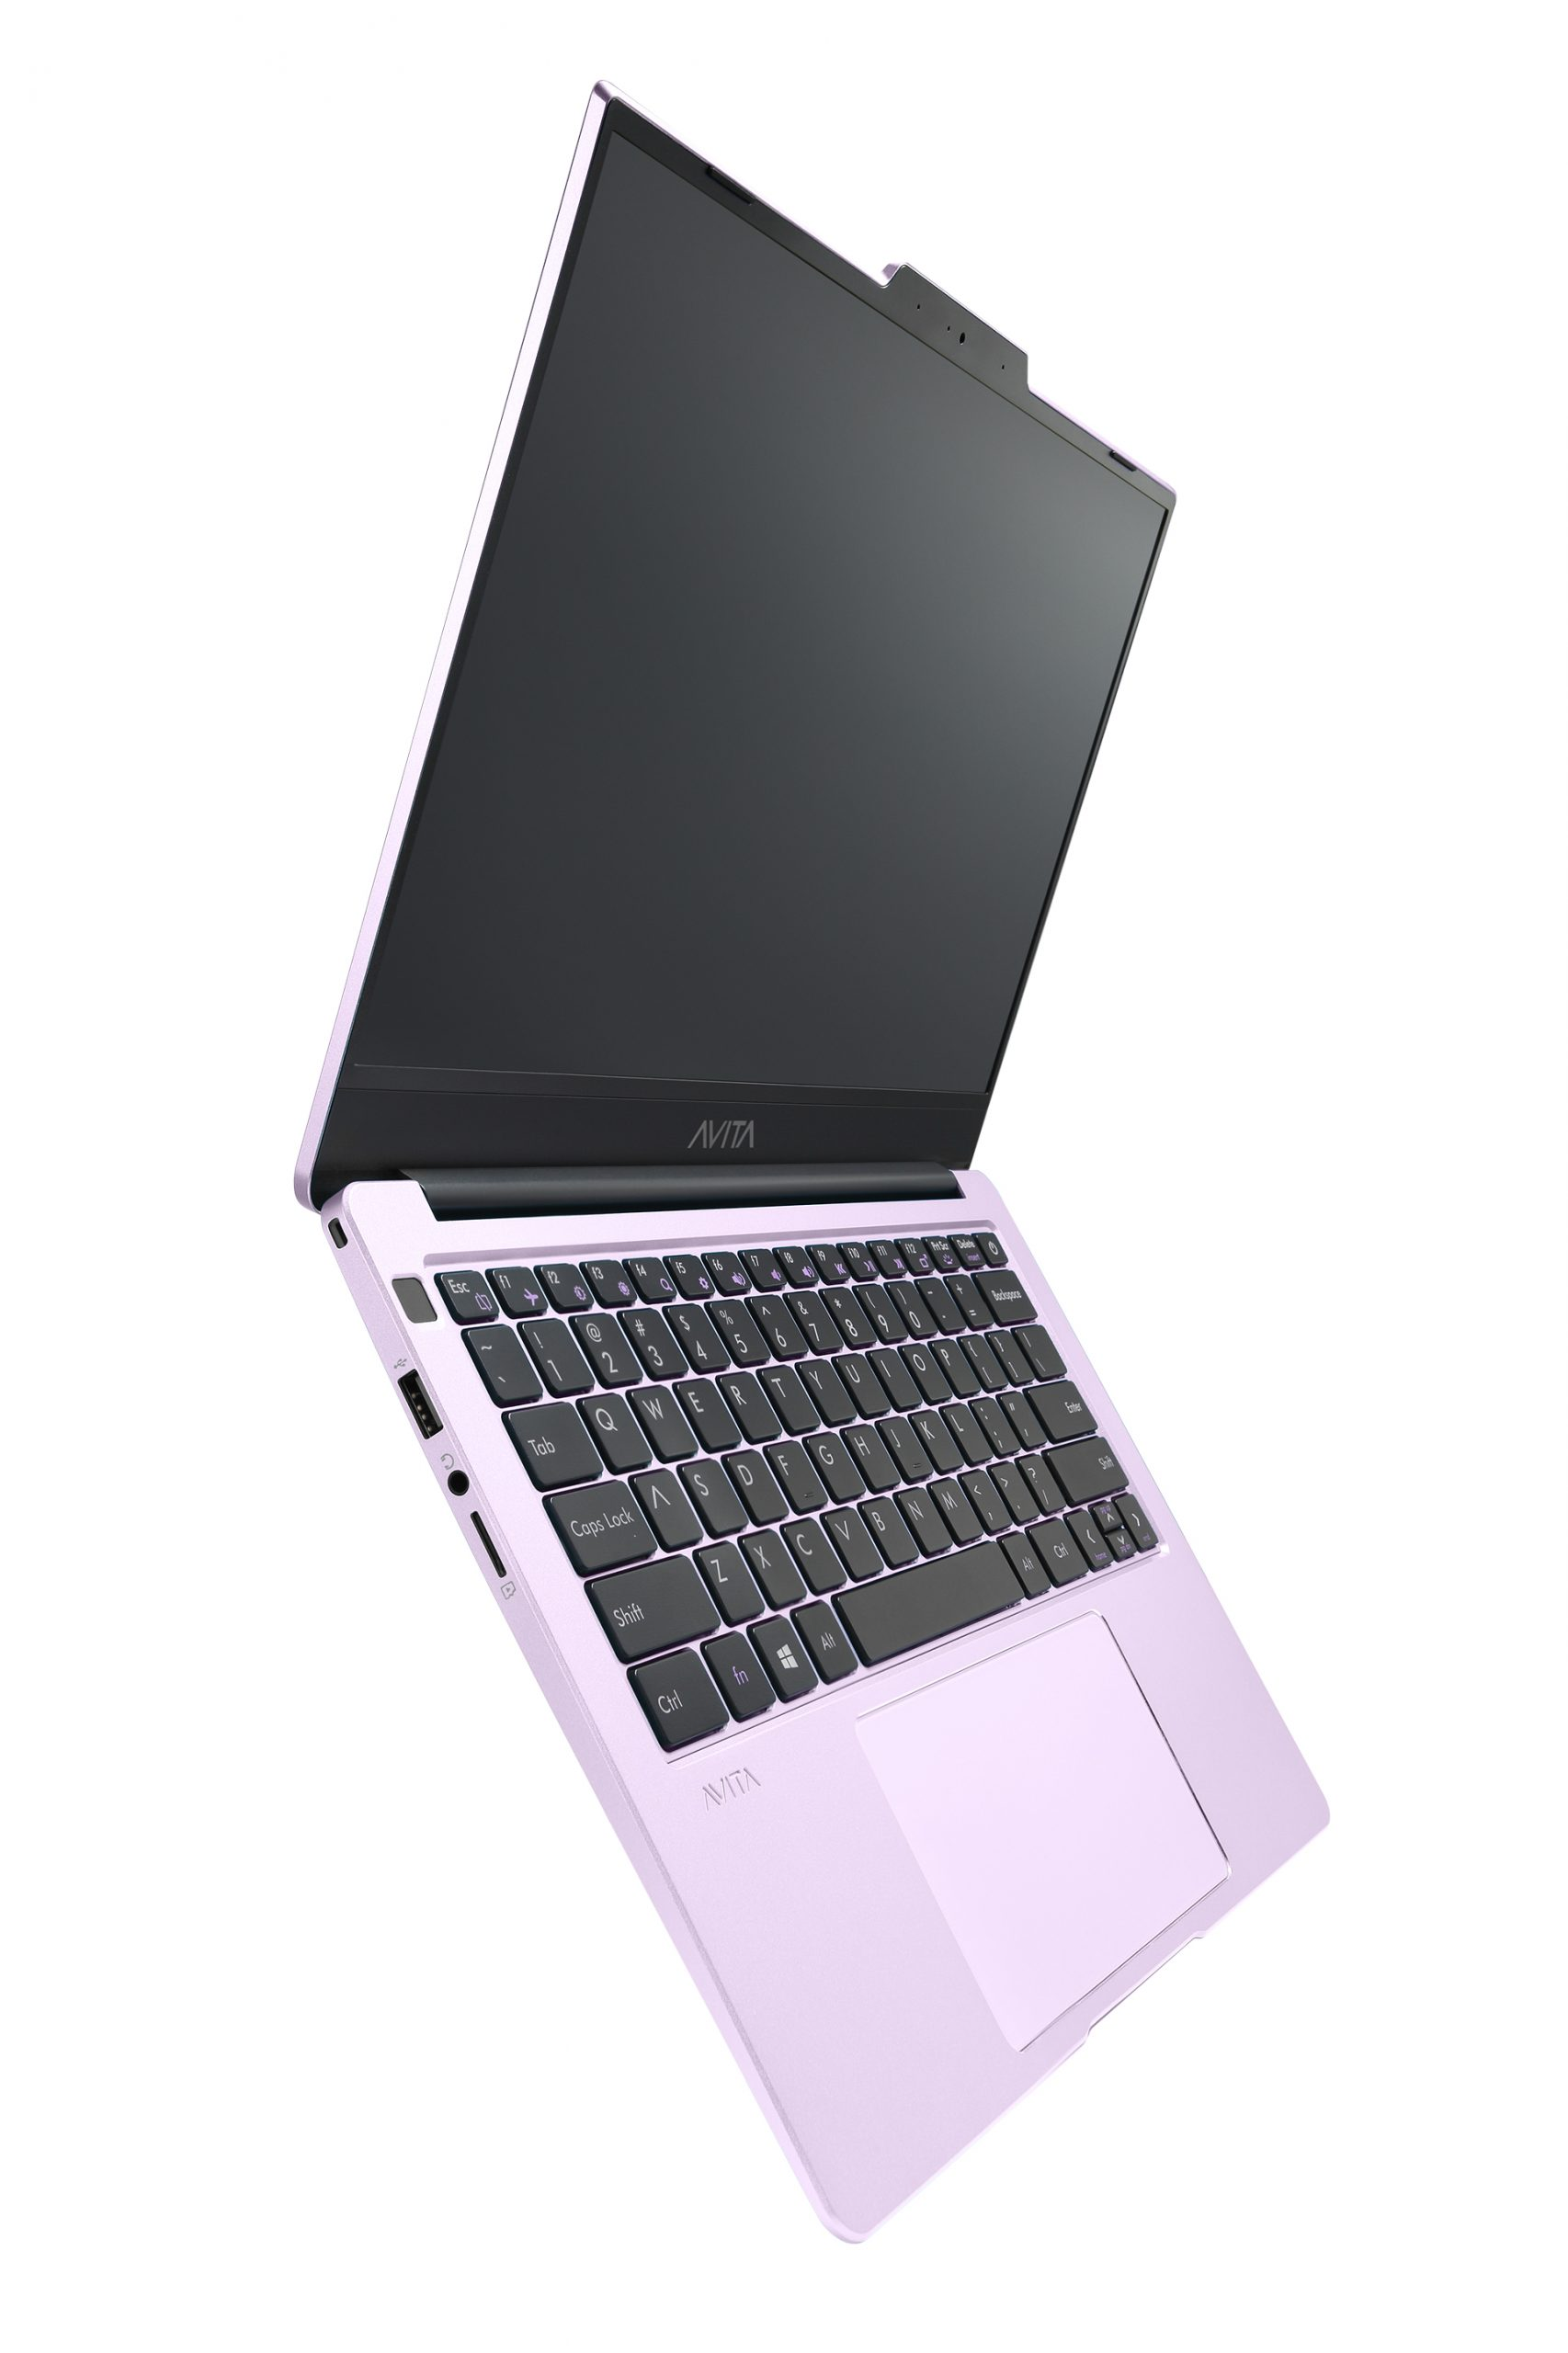 https://t2qwifi.com/wp-content/uploads/2020/07/avita_laptop_2020_angle9_0050_high_fragrant-lilac-scaled.jpg